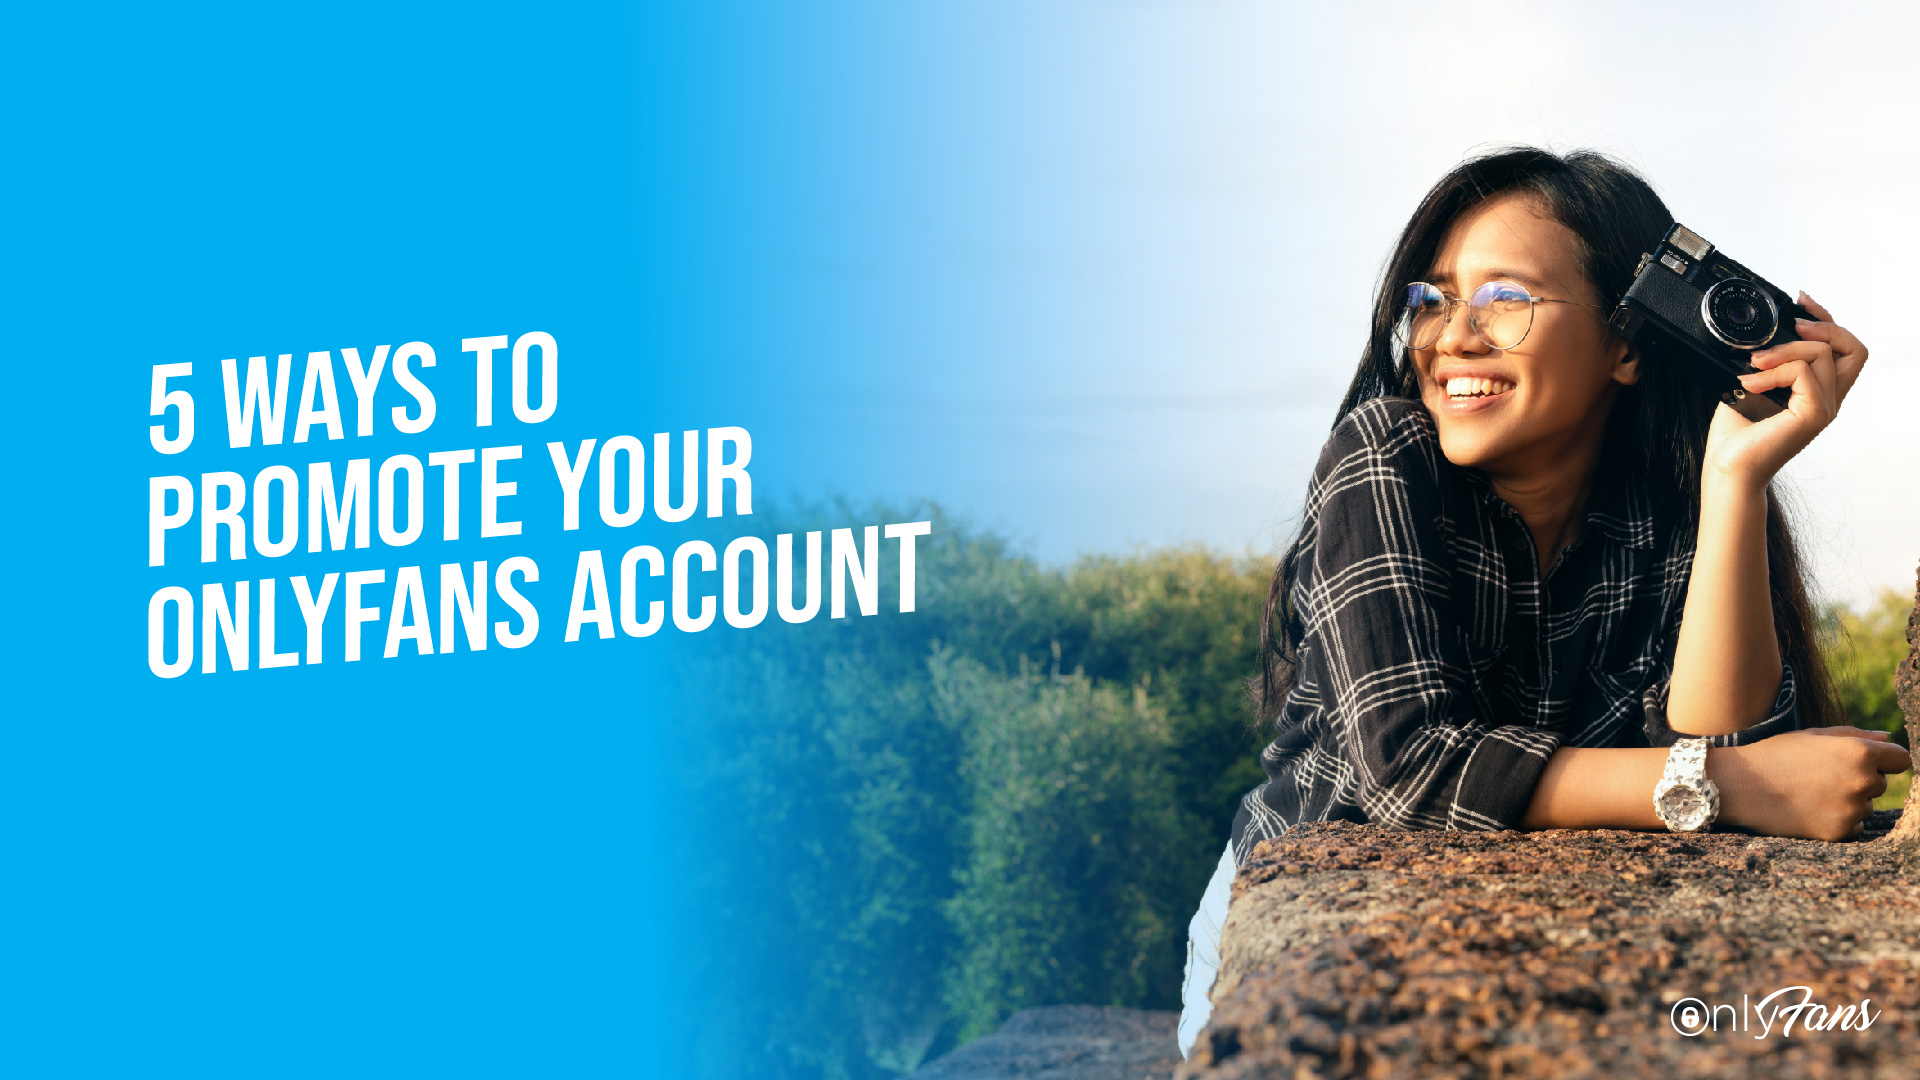 5 ways to promote your OnlyFans account